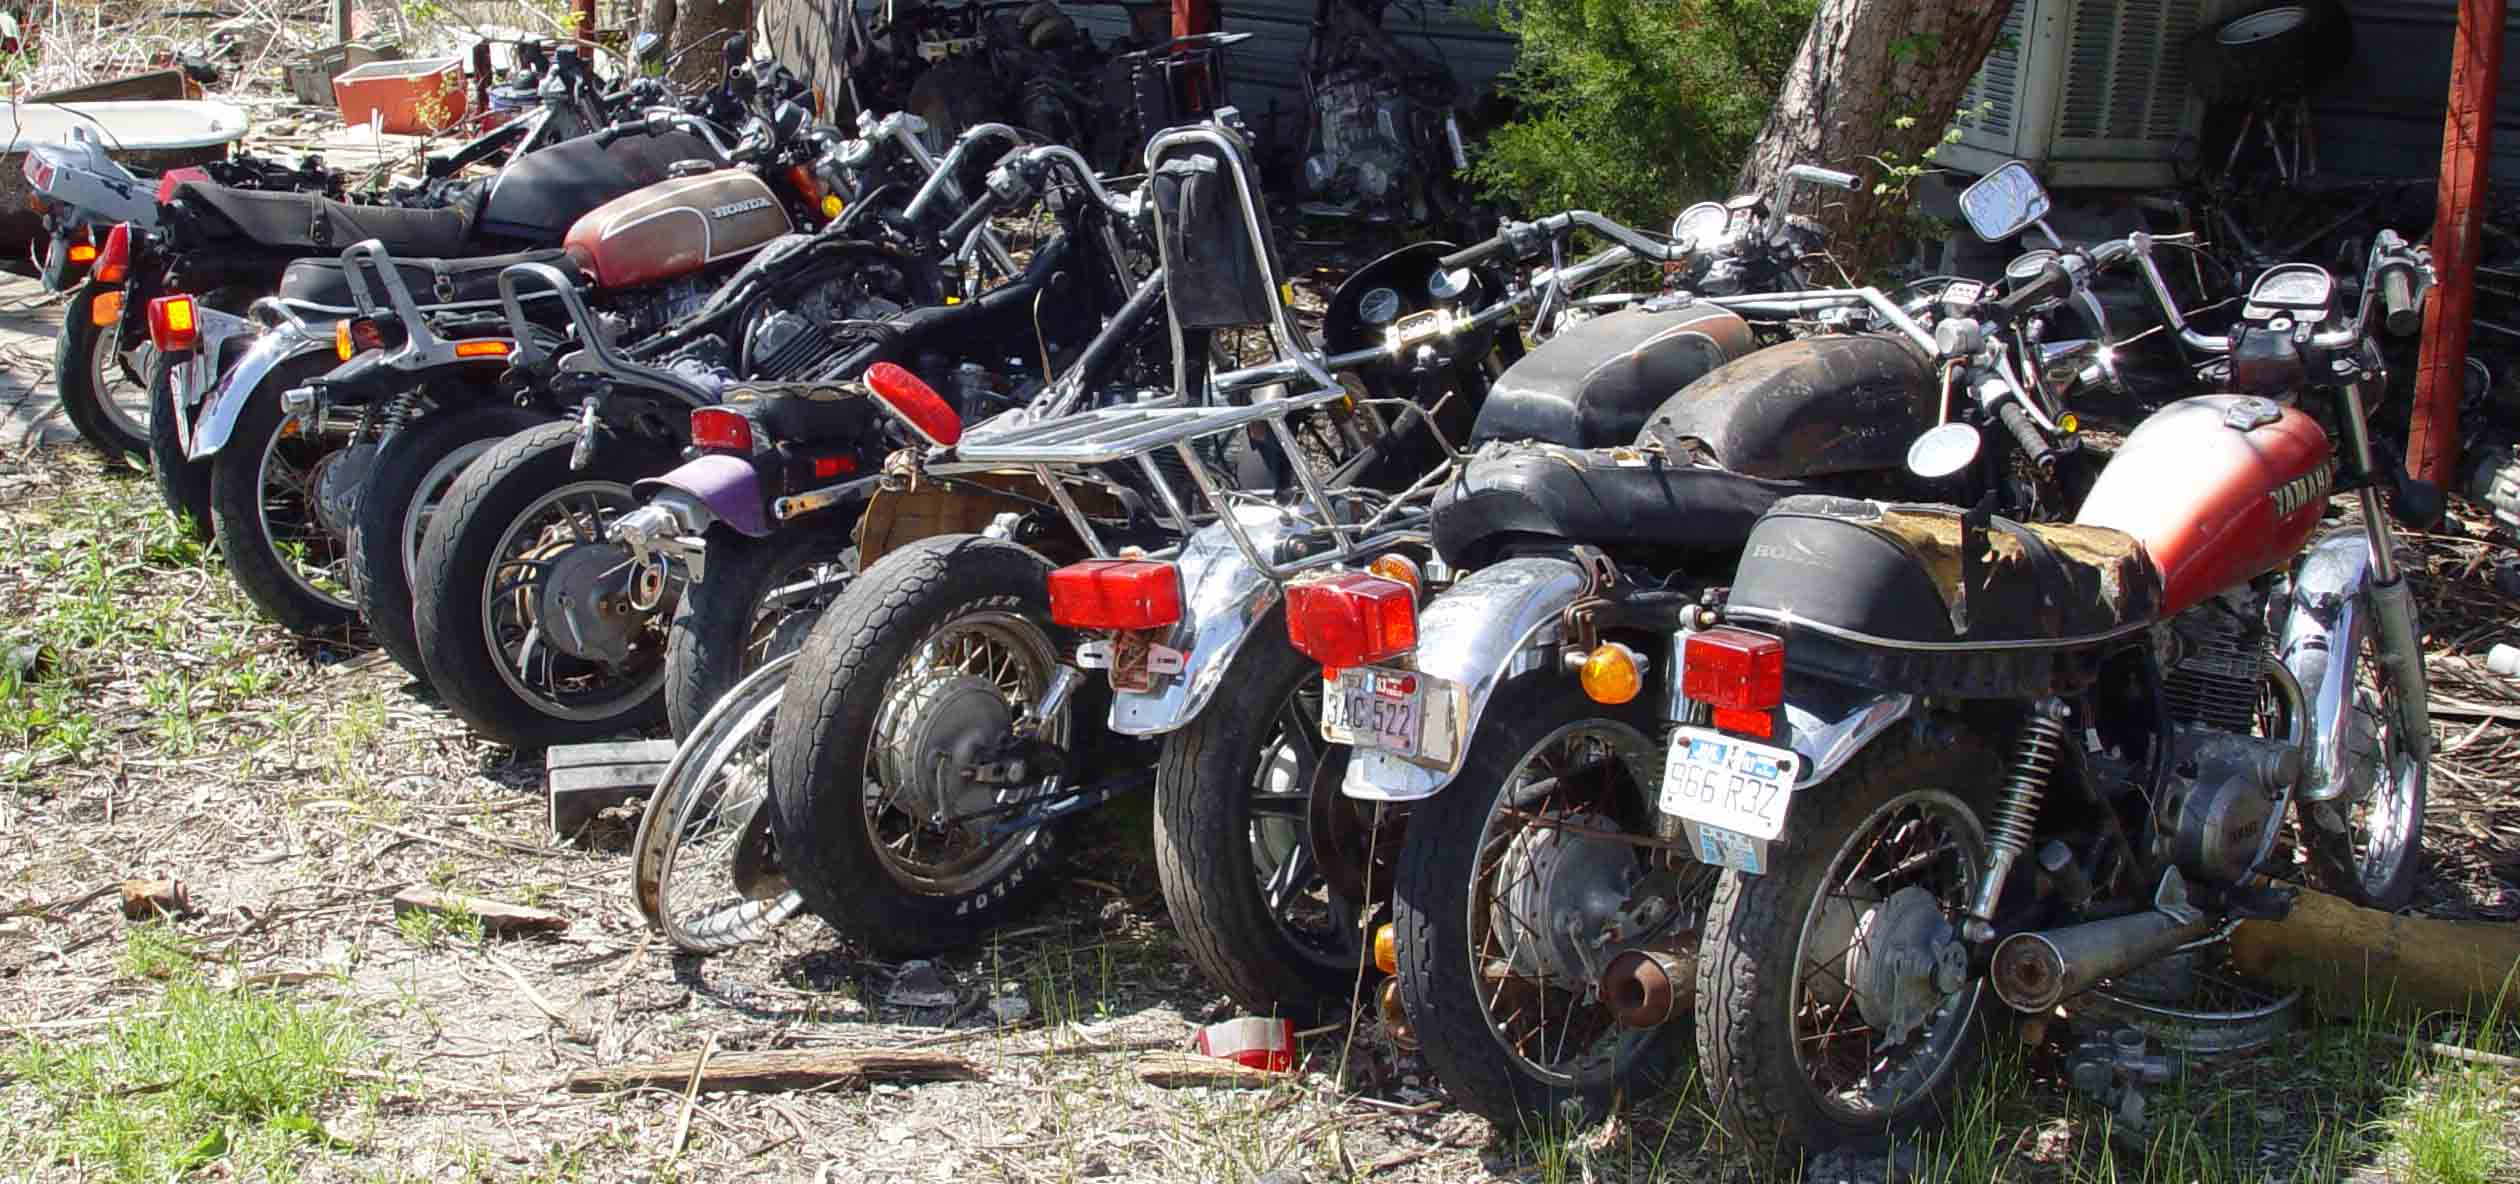 Live Motorcycle Salvage Yard Auction June 5 2004 Dallas